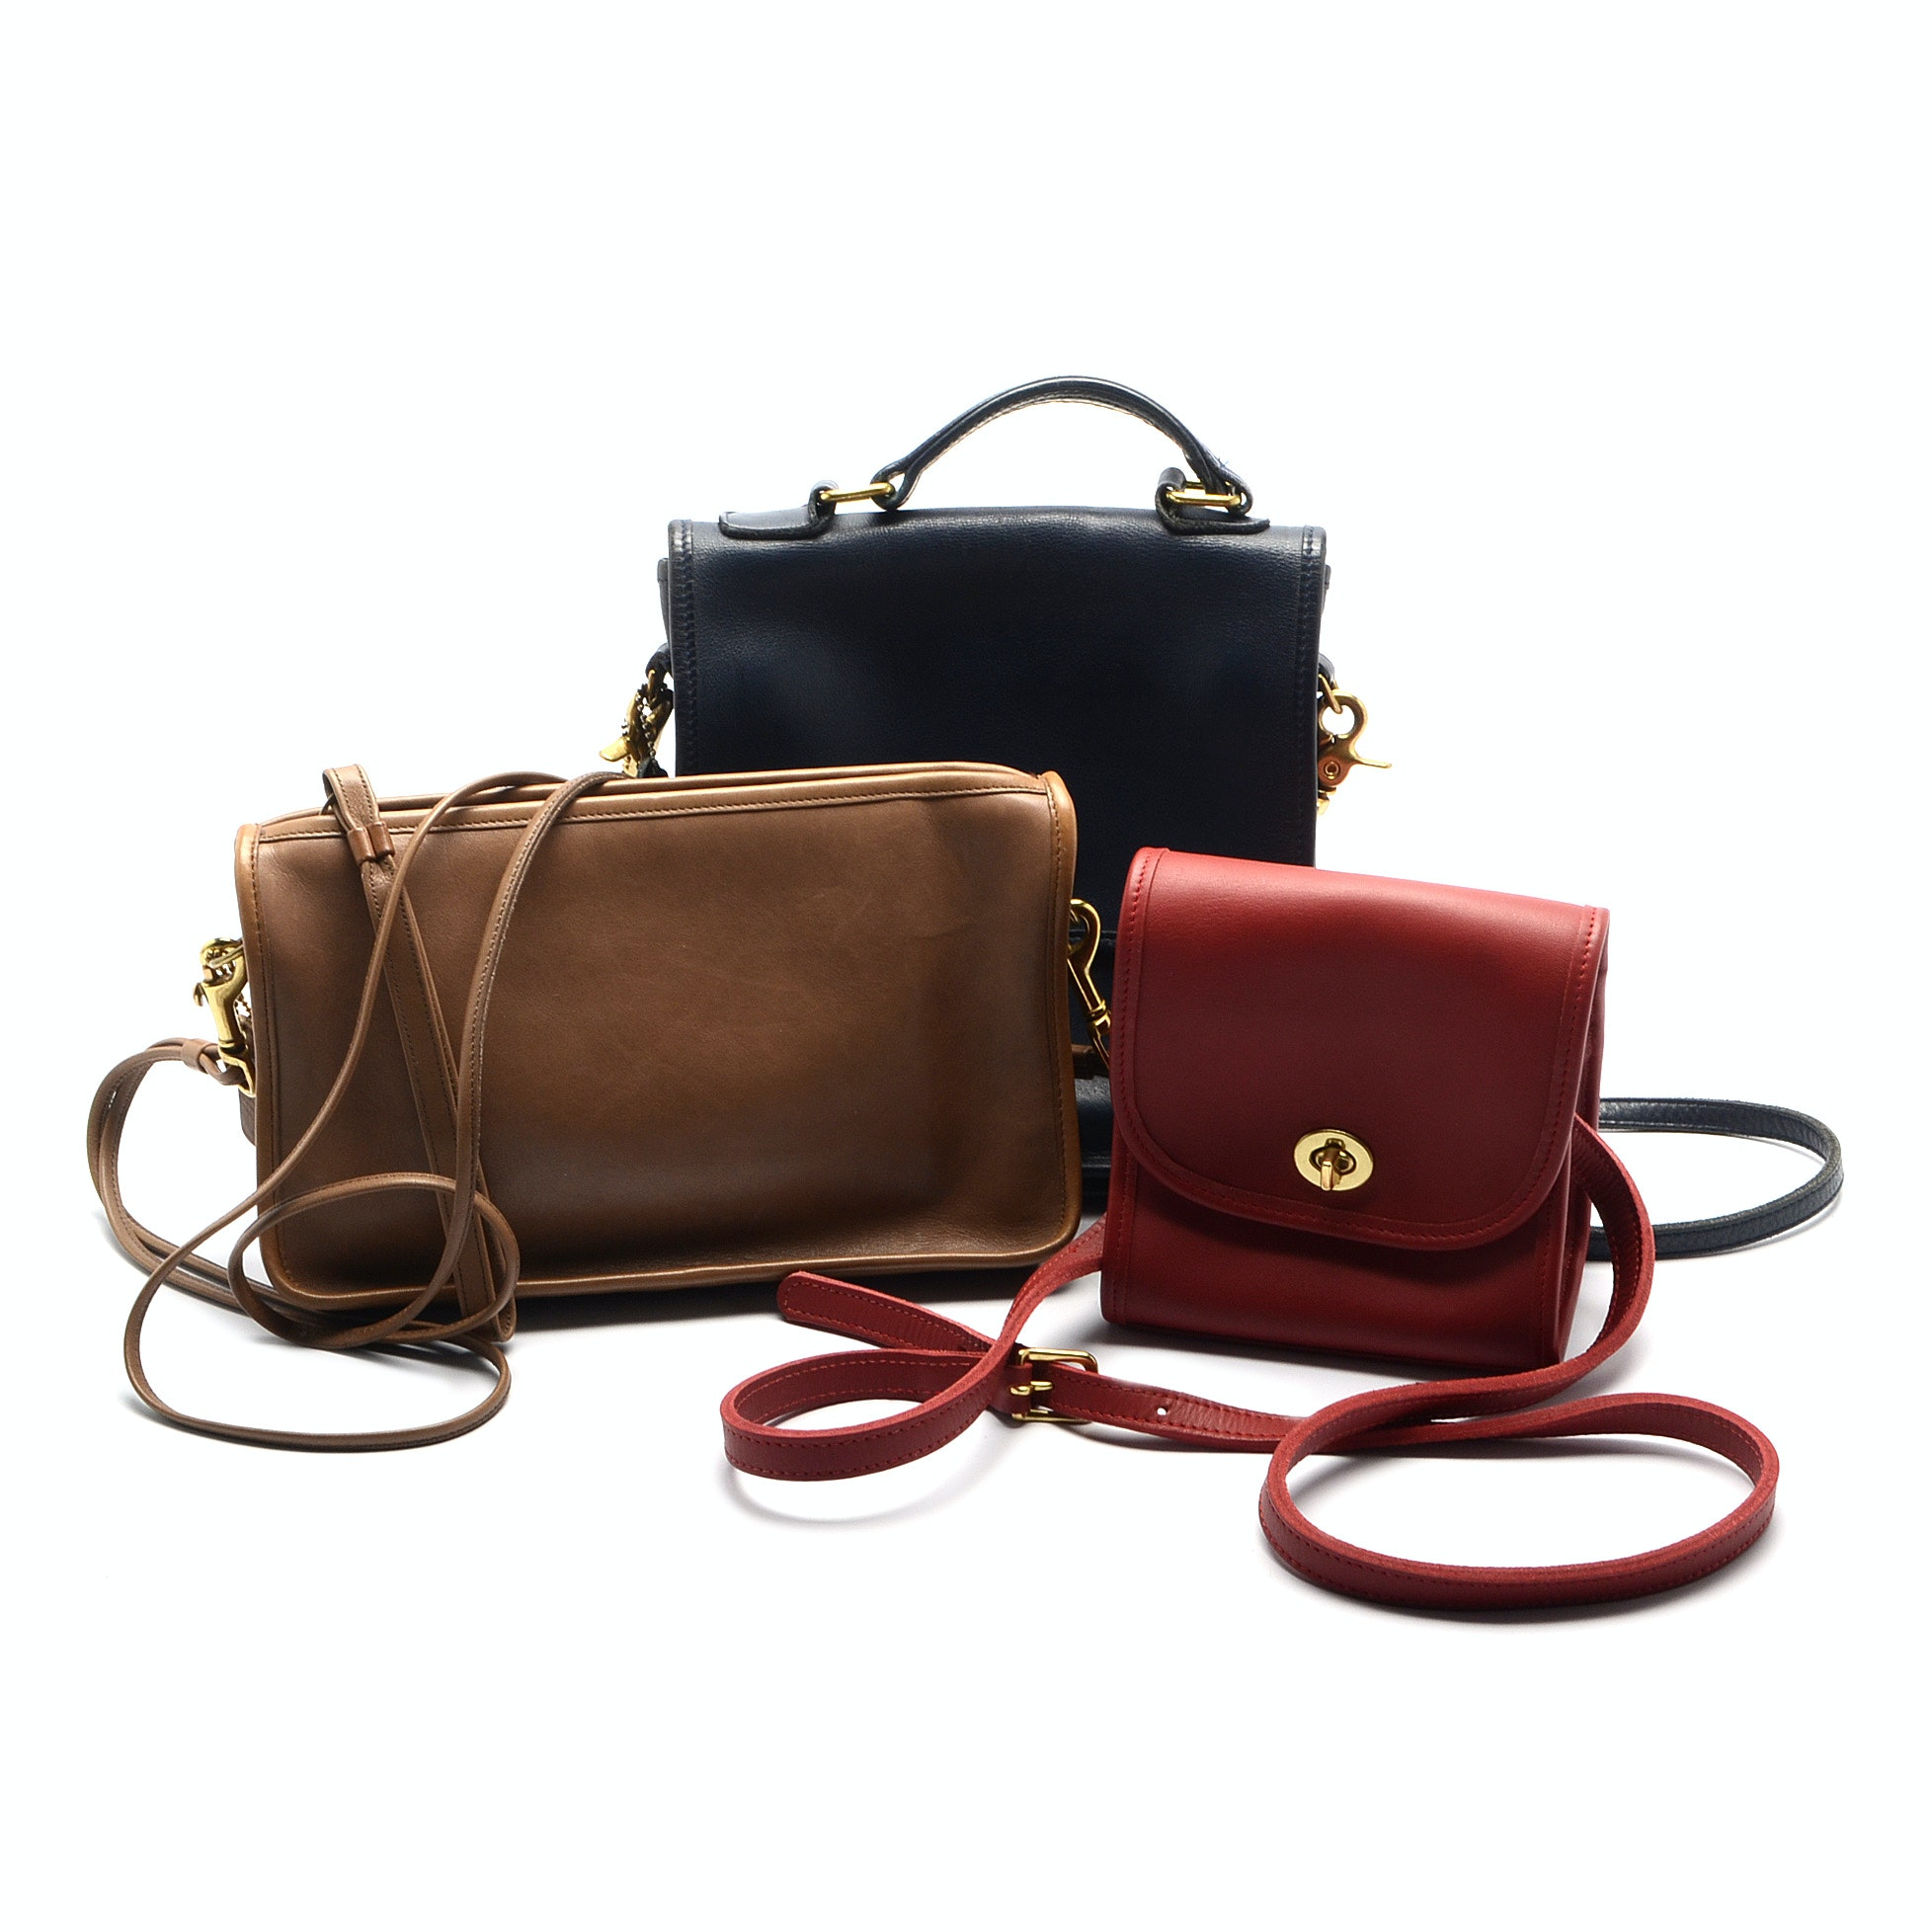 Coach American-Made Leather Handbags Including Station and Emily Flap Styles